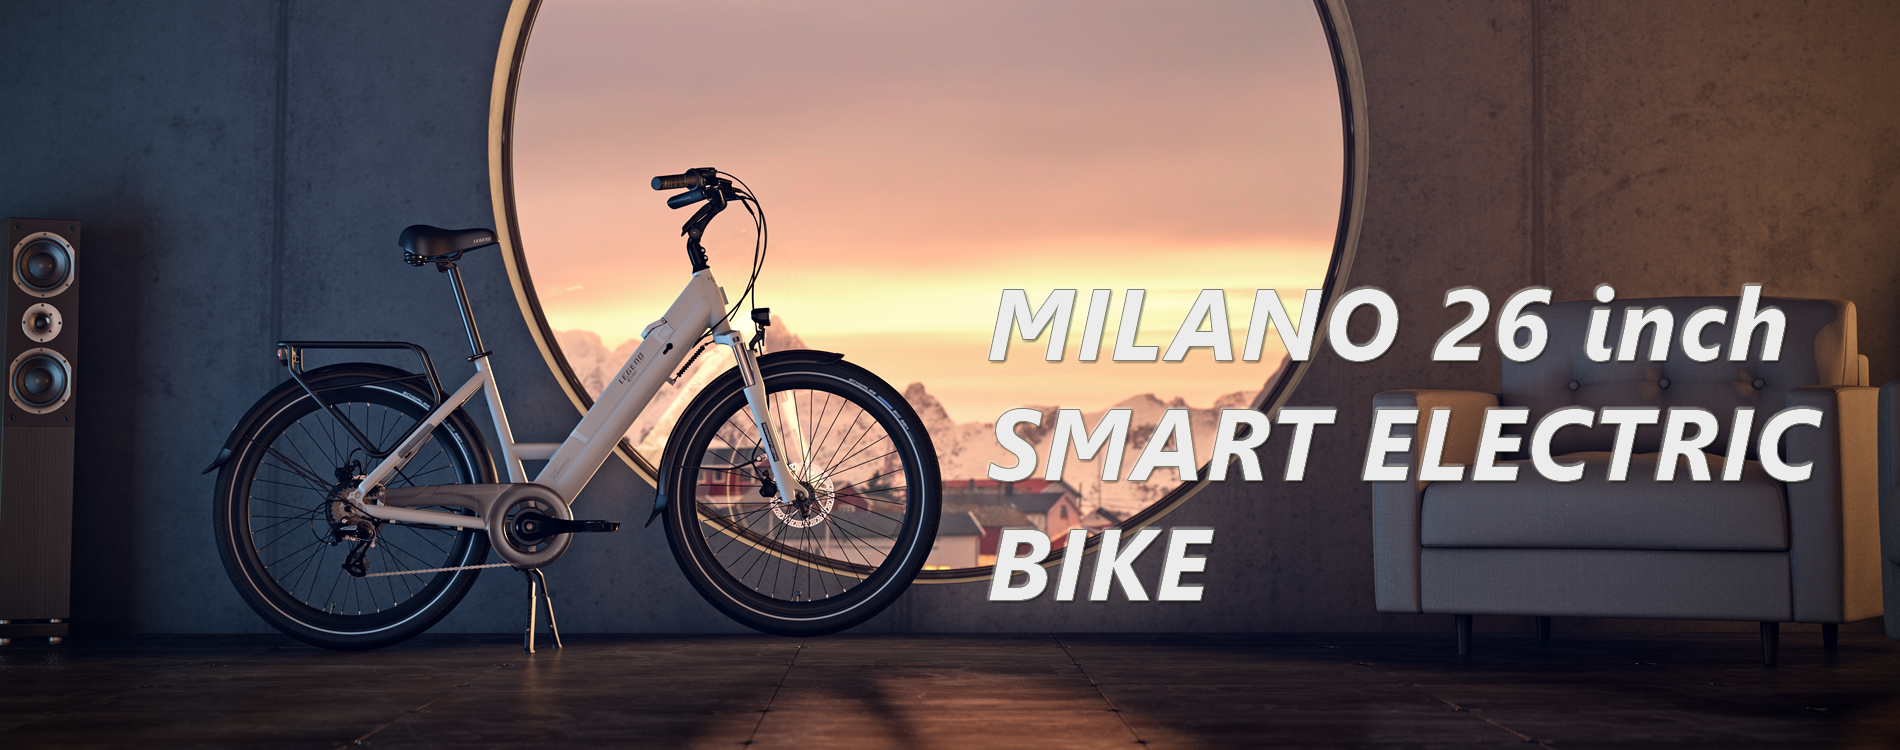 Milano Electric Bike 26 inch